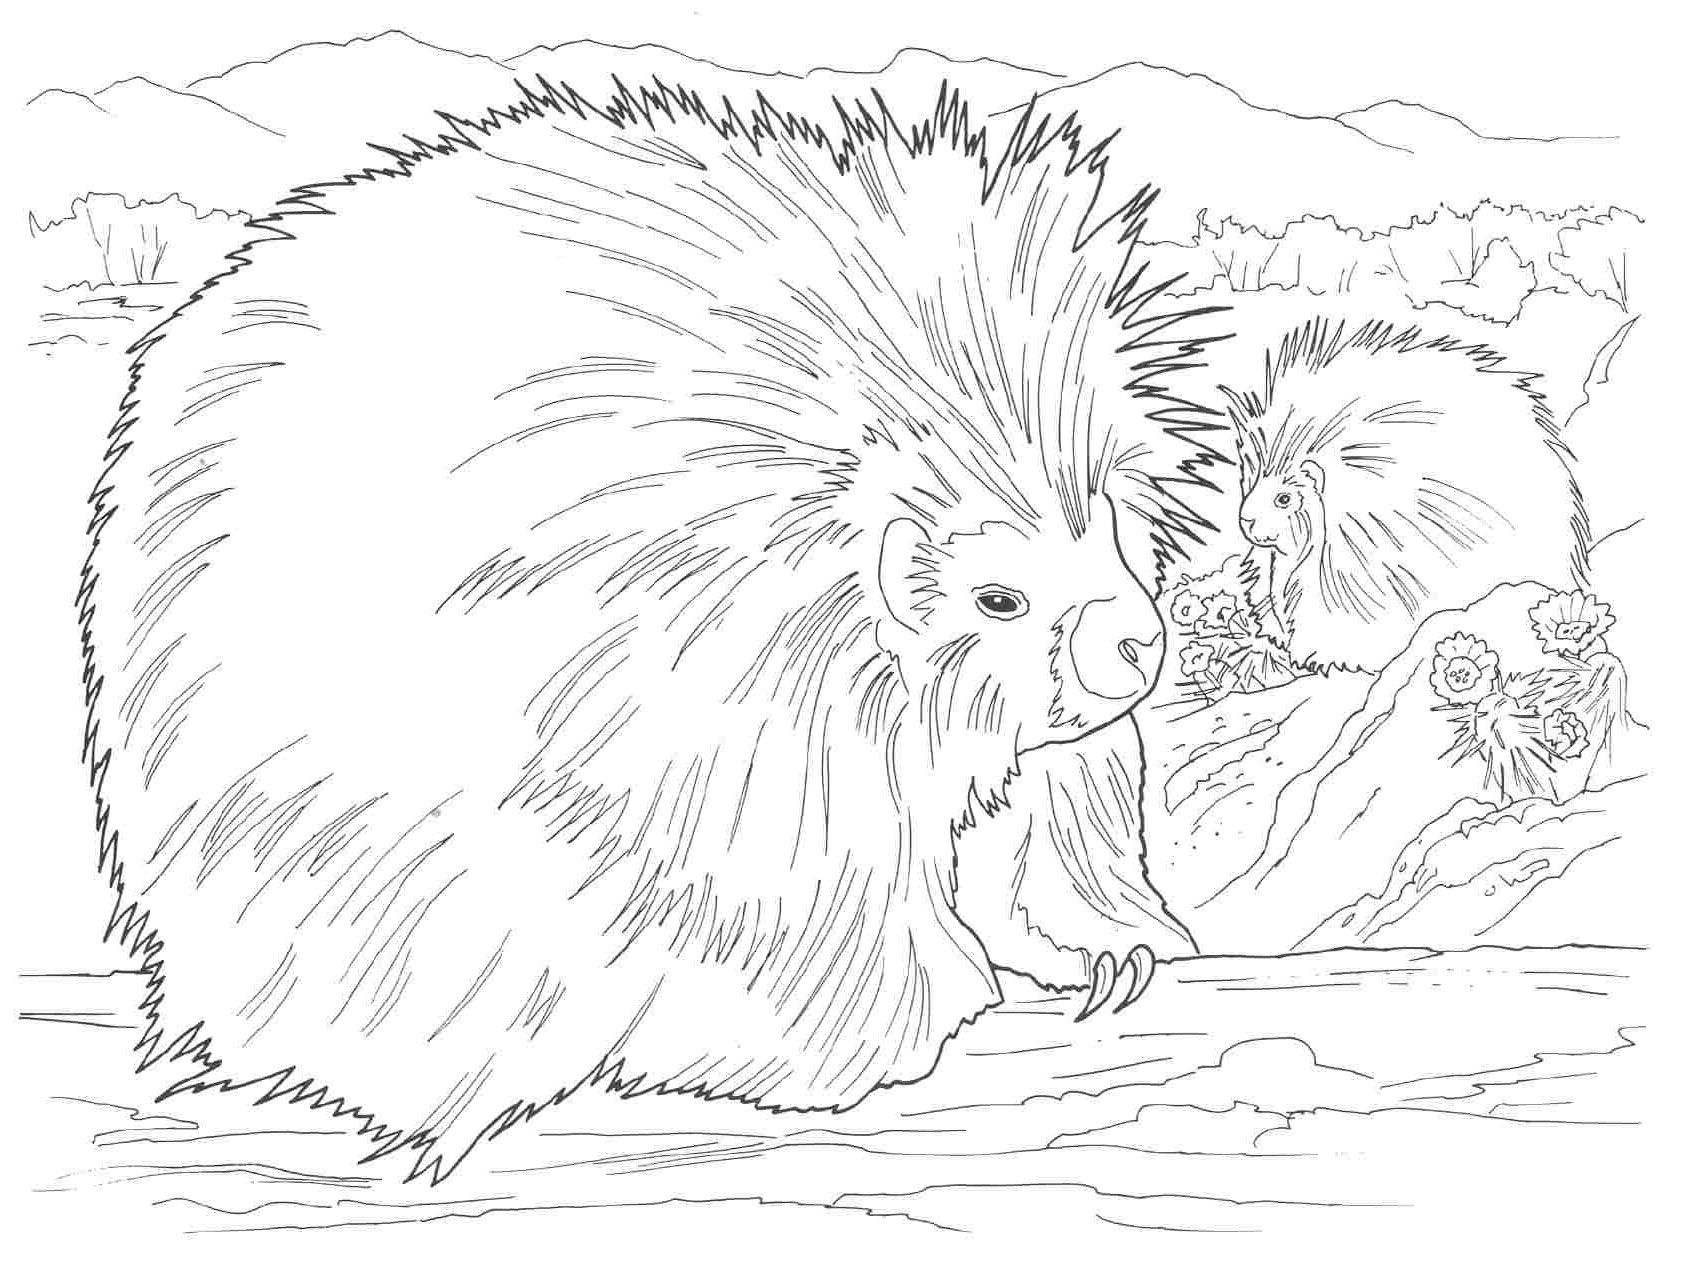 coloring pages for adults realistic animals - Google Search ...